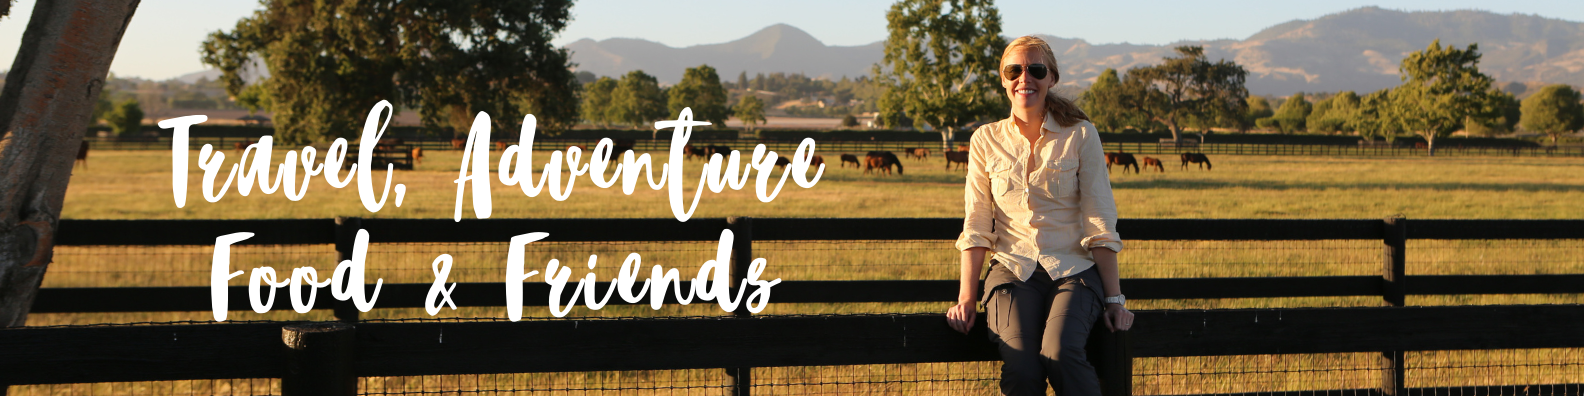 Event Page Banner: Travel, Adventure Food & Friends